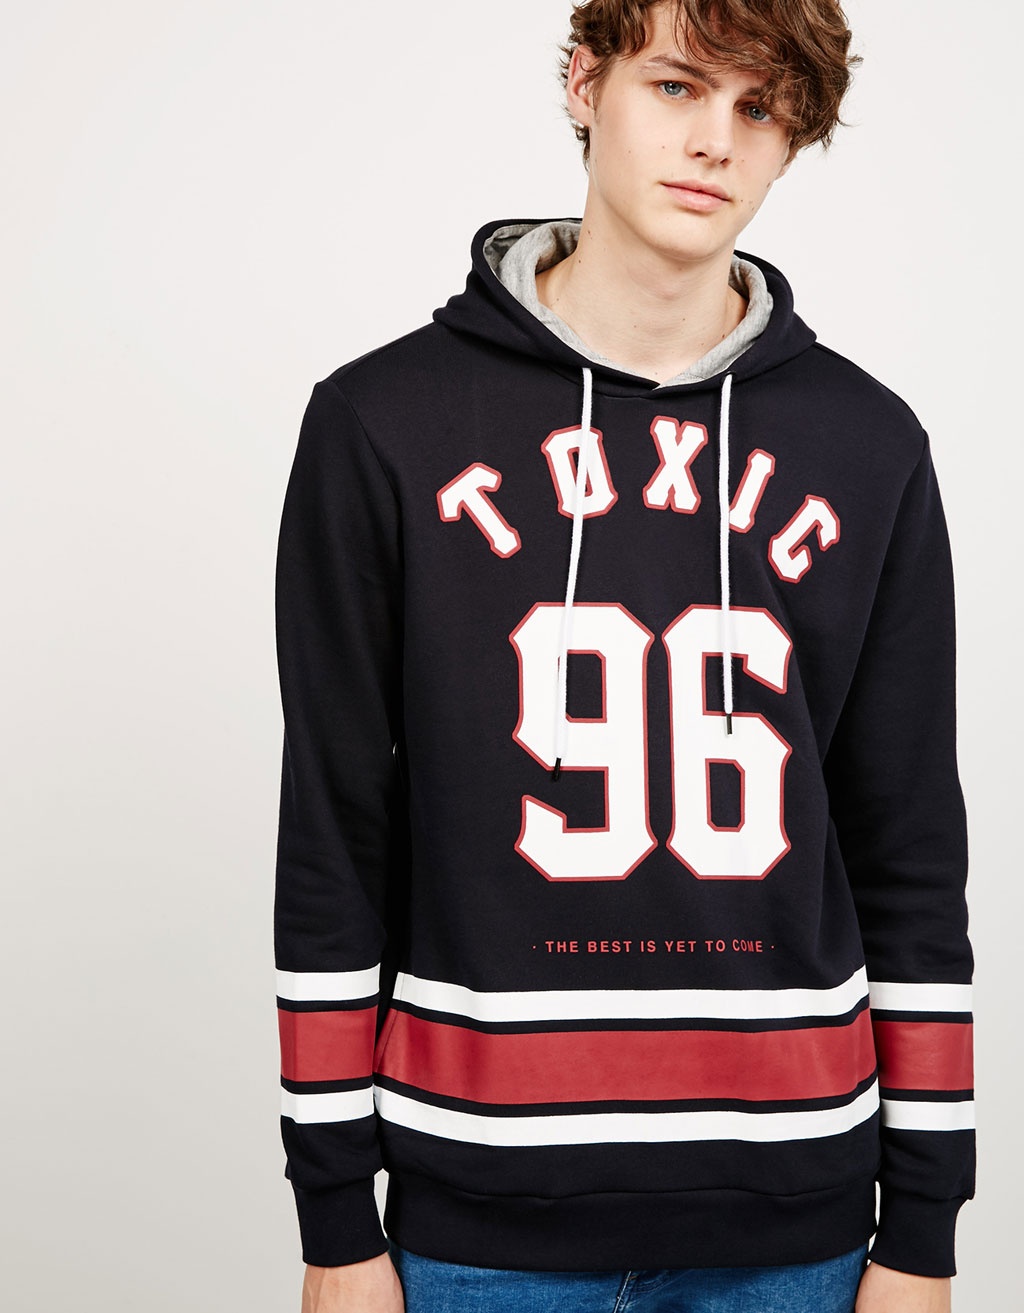 Plush hooded sweatshirt with text